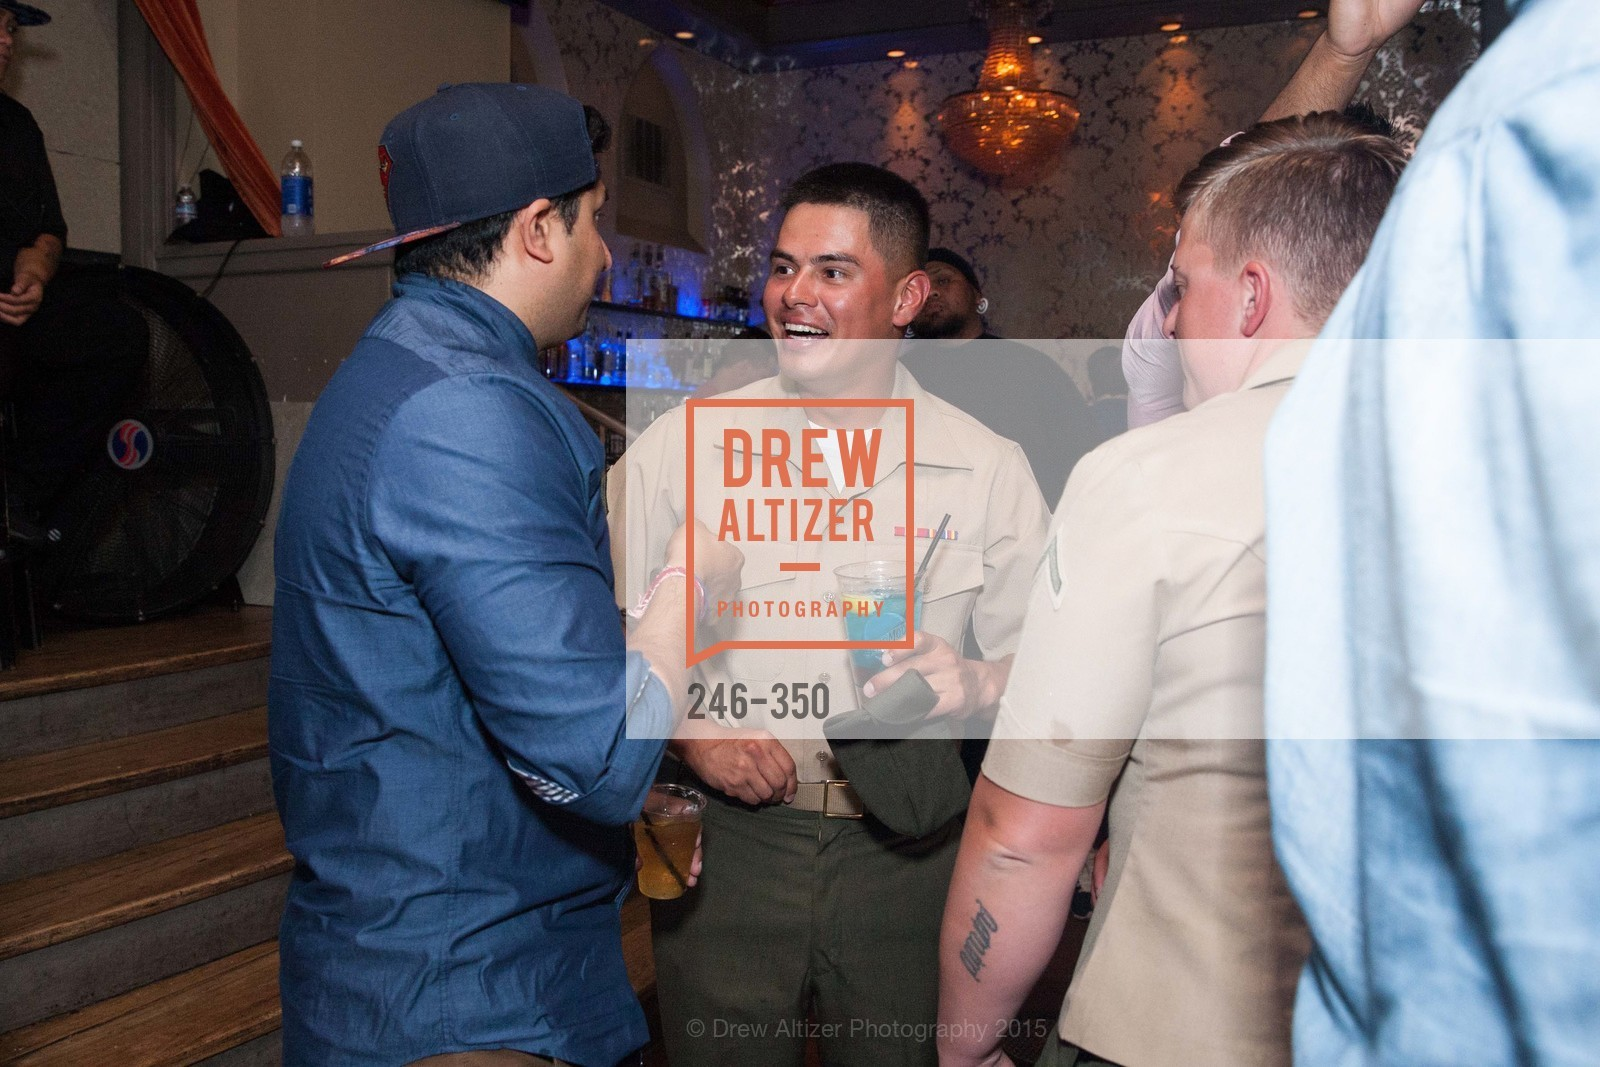 Extras, Spinsters of San Francisco Presents: Fleet or Flight, October 9th, 2015, Photo,Drew Altizer, Drew Altizer Photography, full-service agency, private events, San Francisco photographer, photographer california